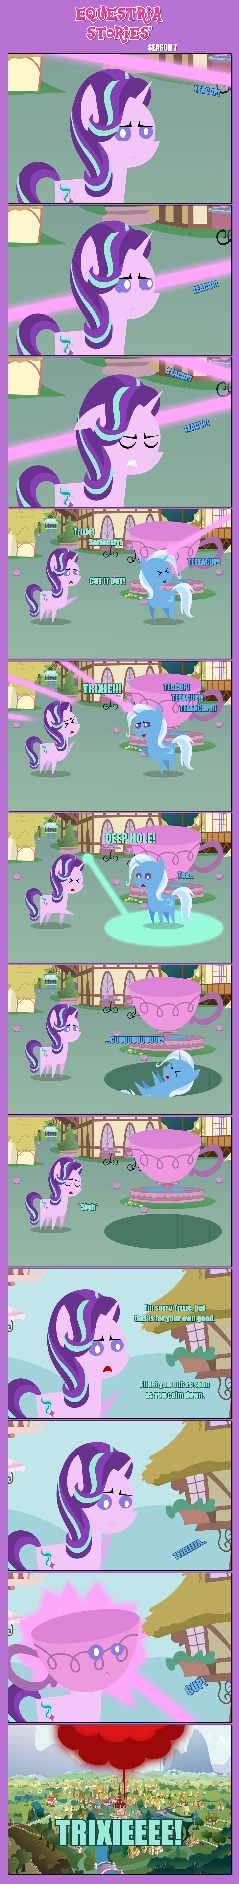 ES' S7: ''FOLLOW UP - All Bottled Up''